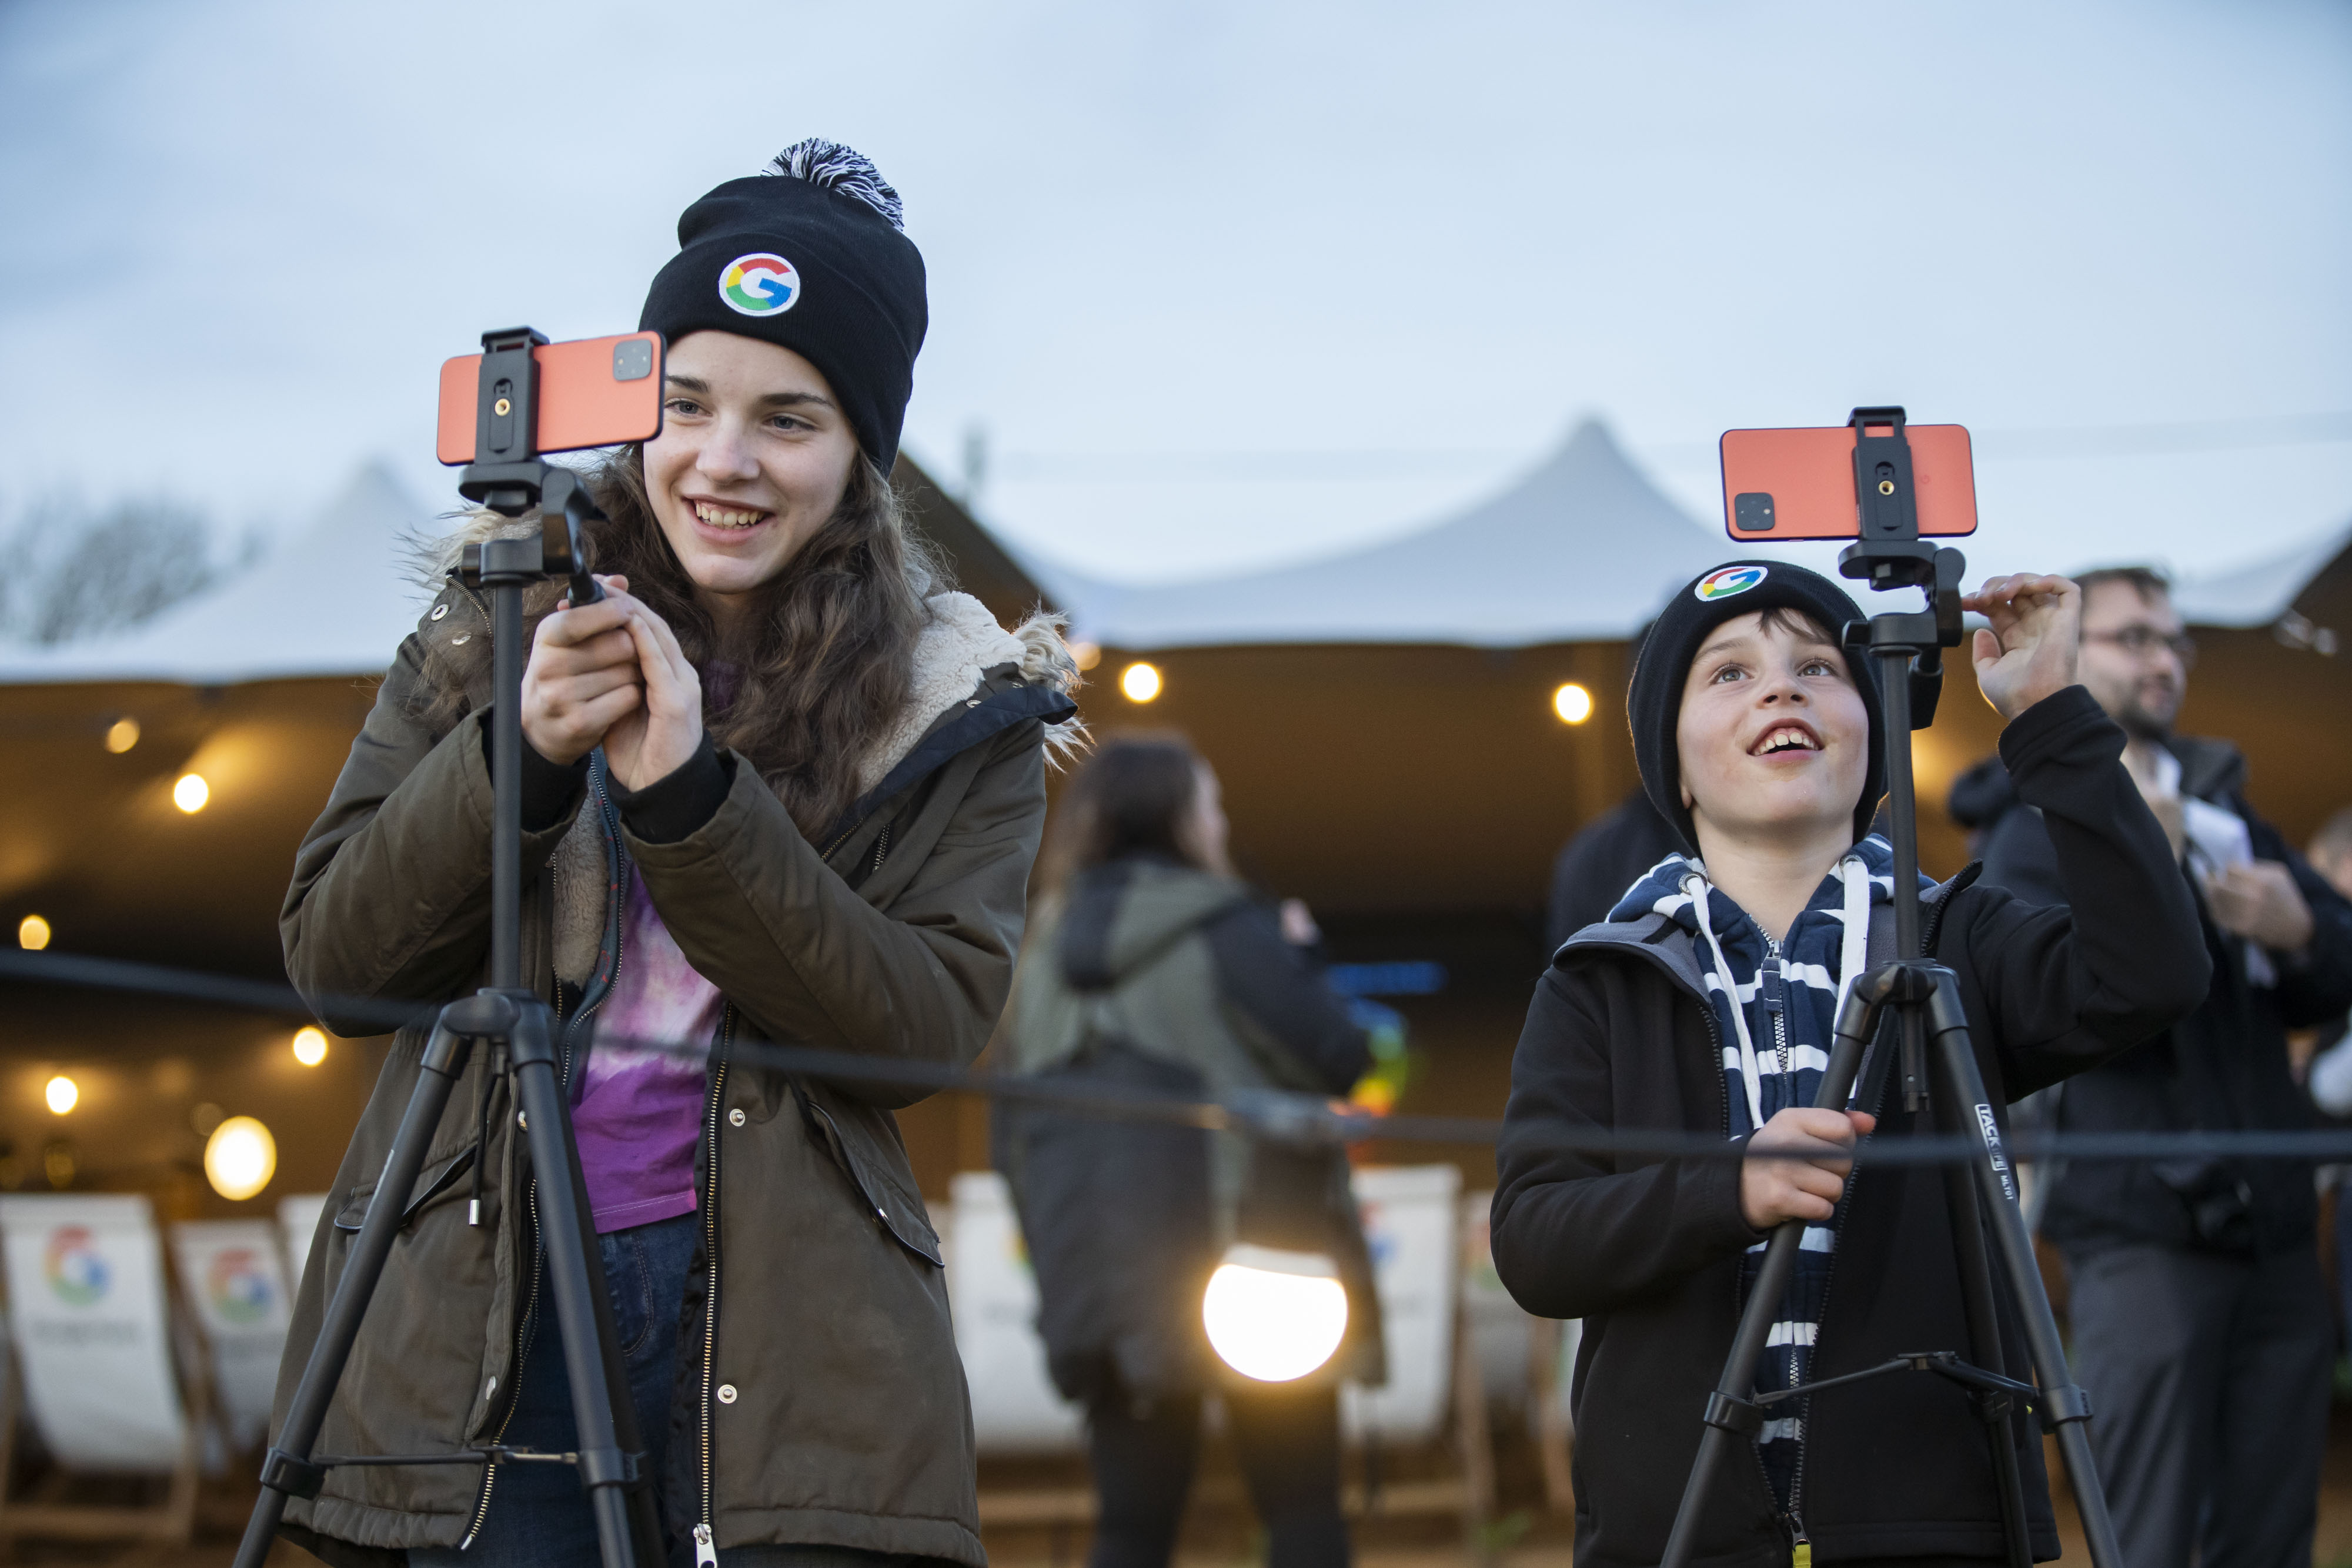 'Astrophotography' is one of the UK's fastest-growing hobbies